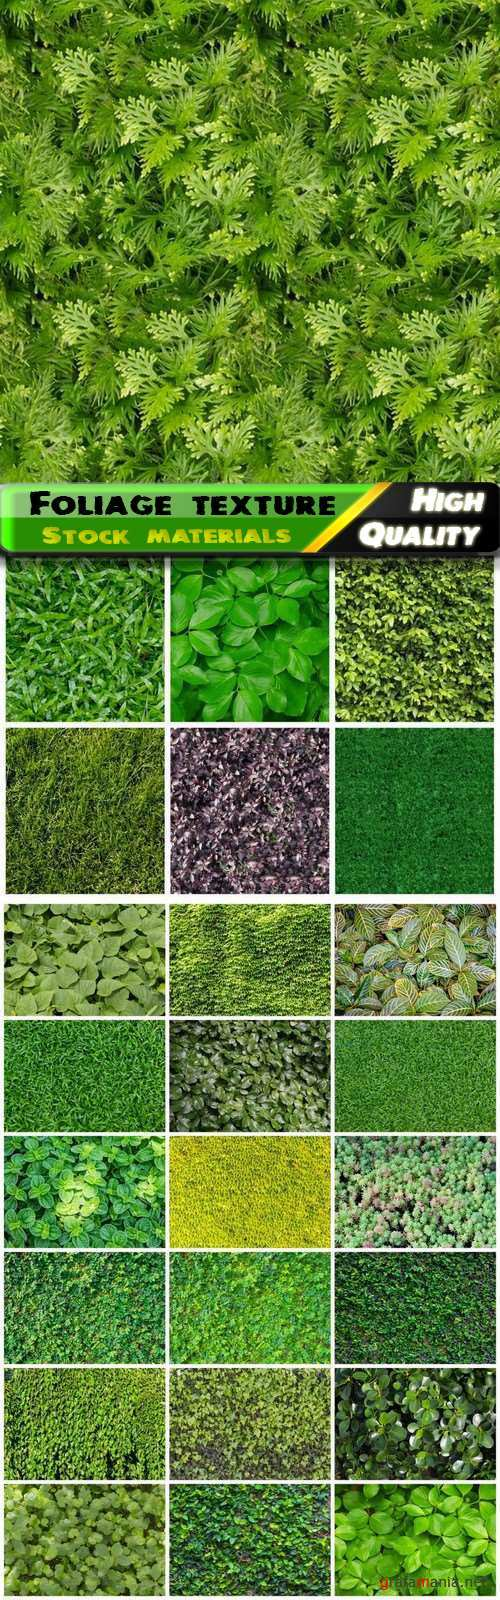 Green seamless foliage and grass eco nature texture - 25 HQ Jpg